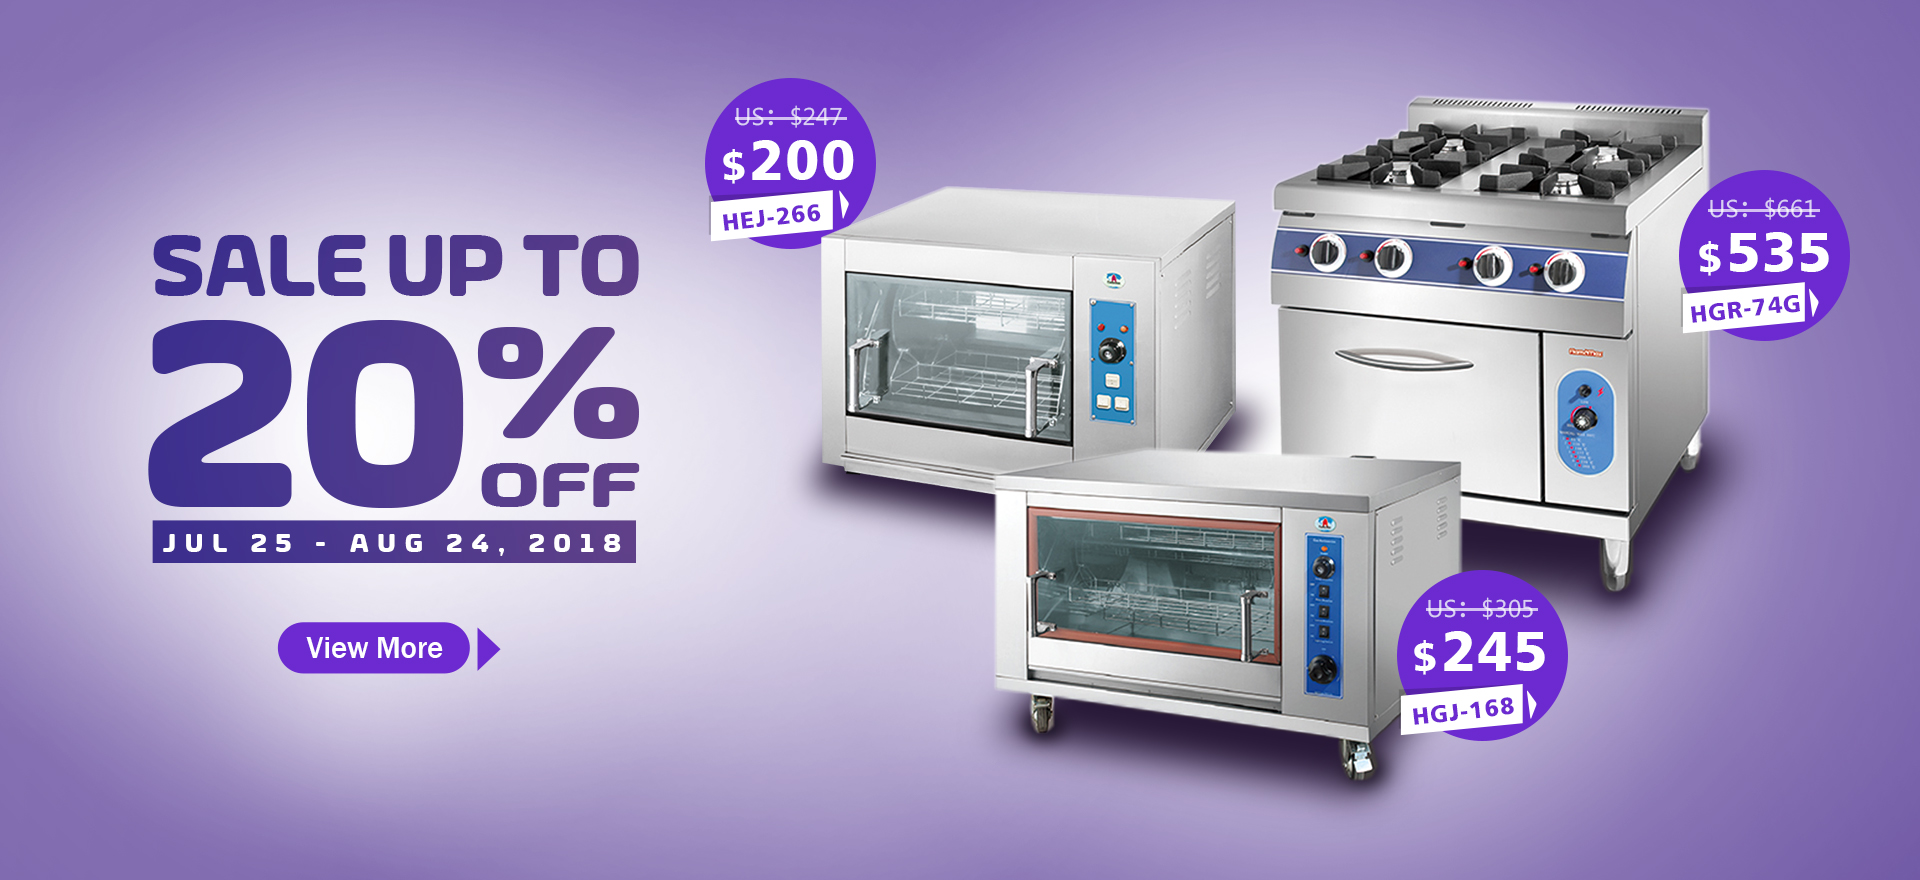 Flamemax_Promotion_Chicken_Rotisserie_Cooking_Range